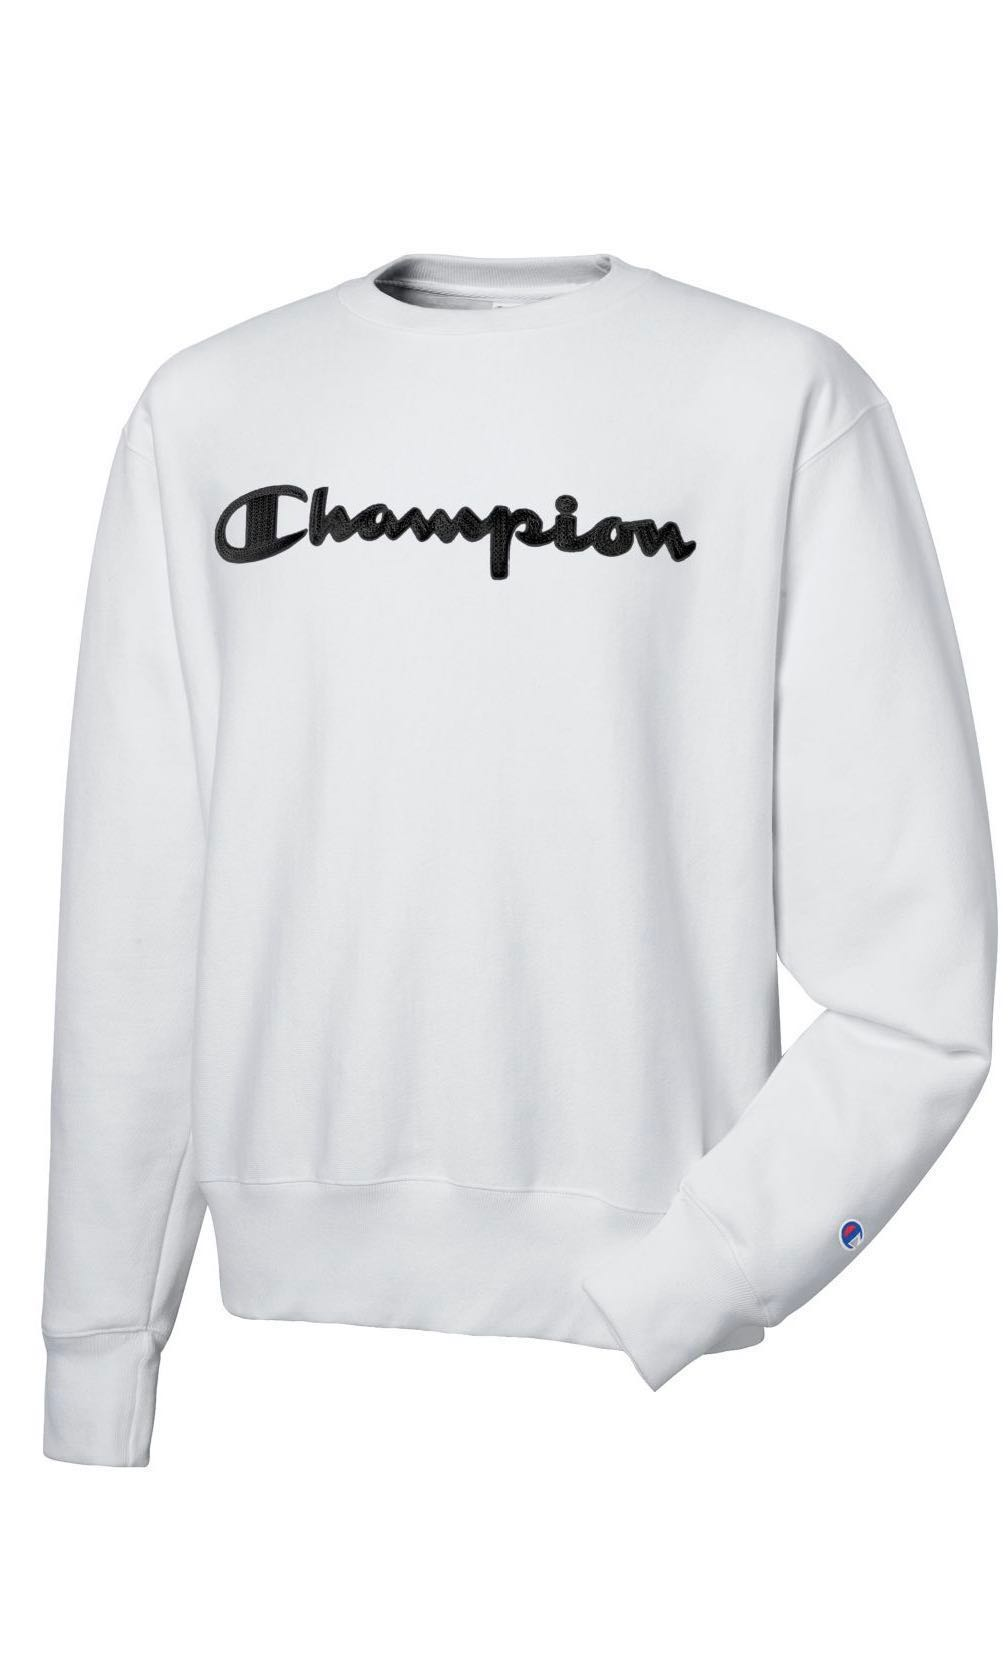 580e5b40f2f9 Champion Reverse Weave Script Logo Sweatshirt, Men's Fashion ...